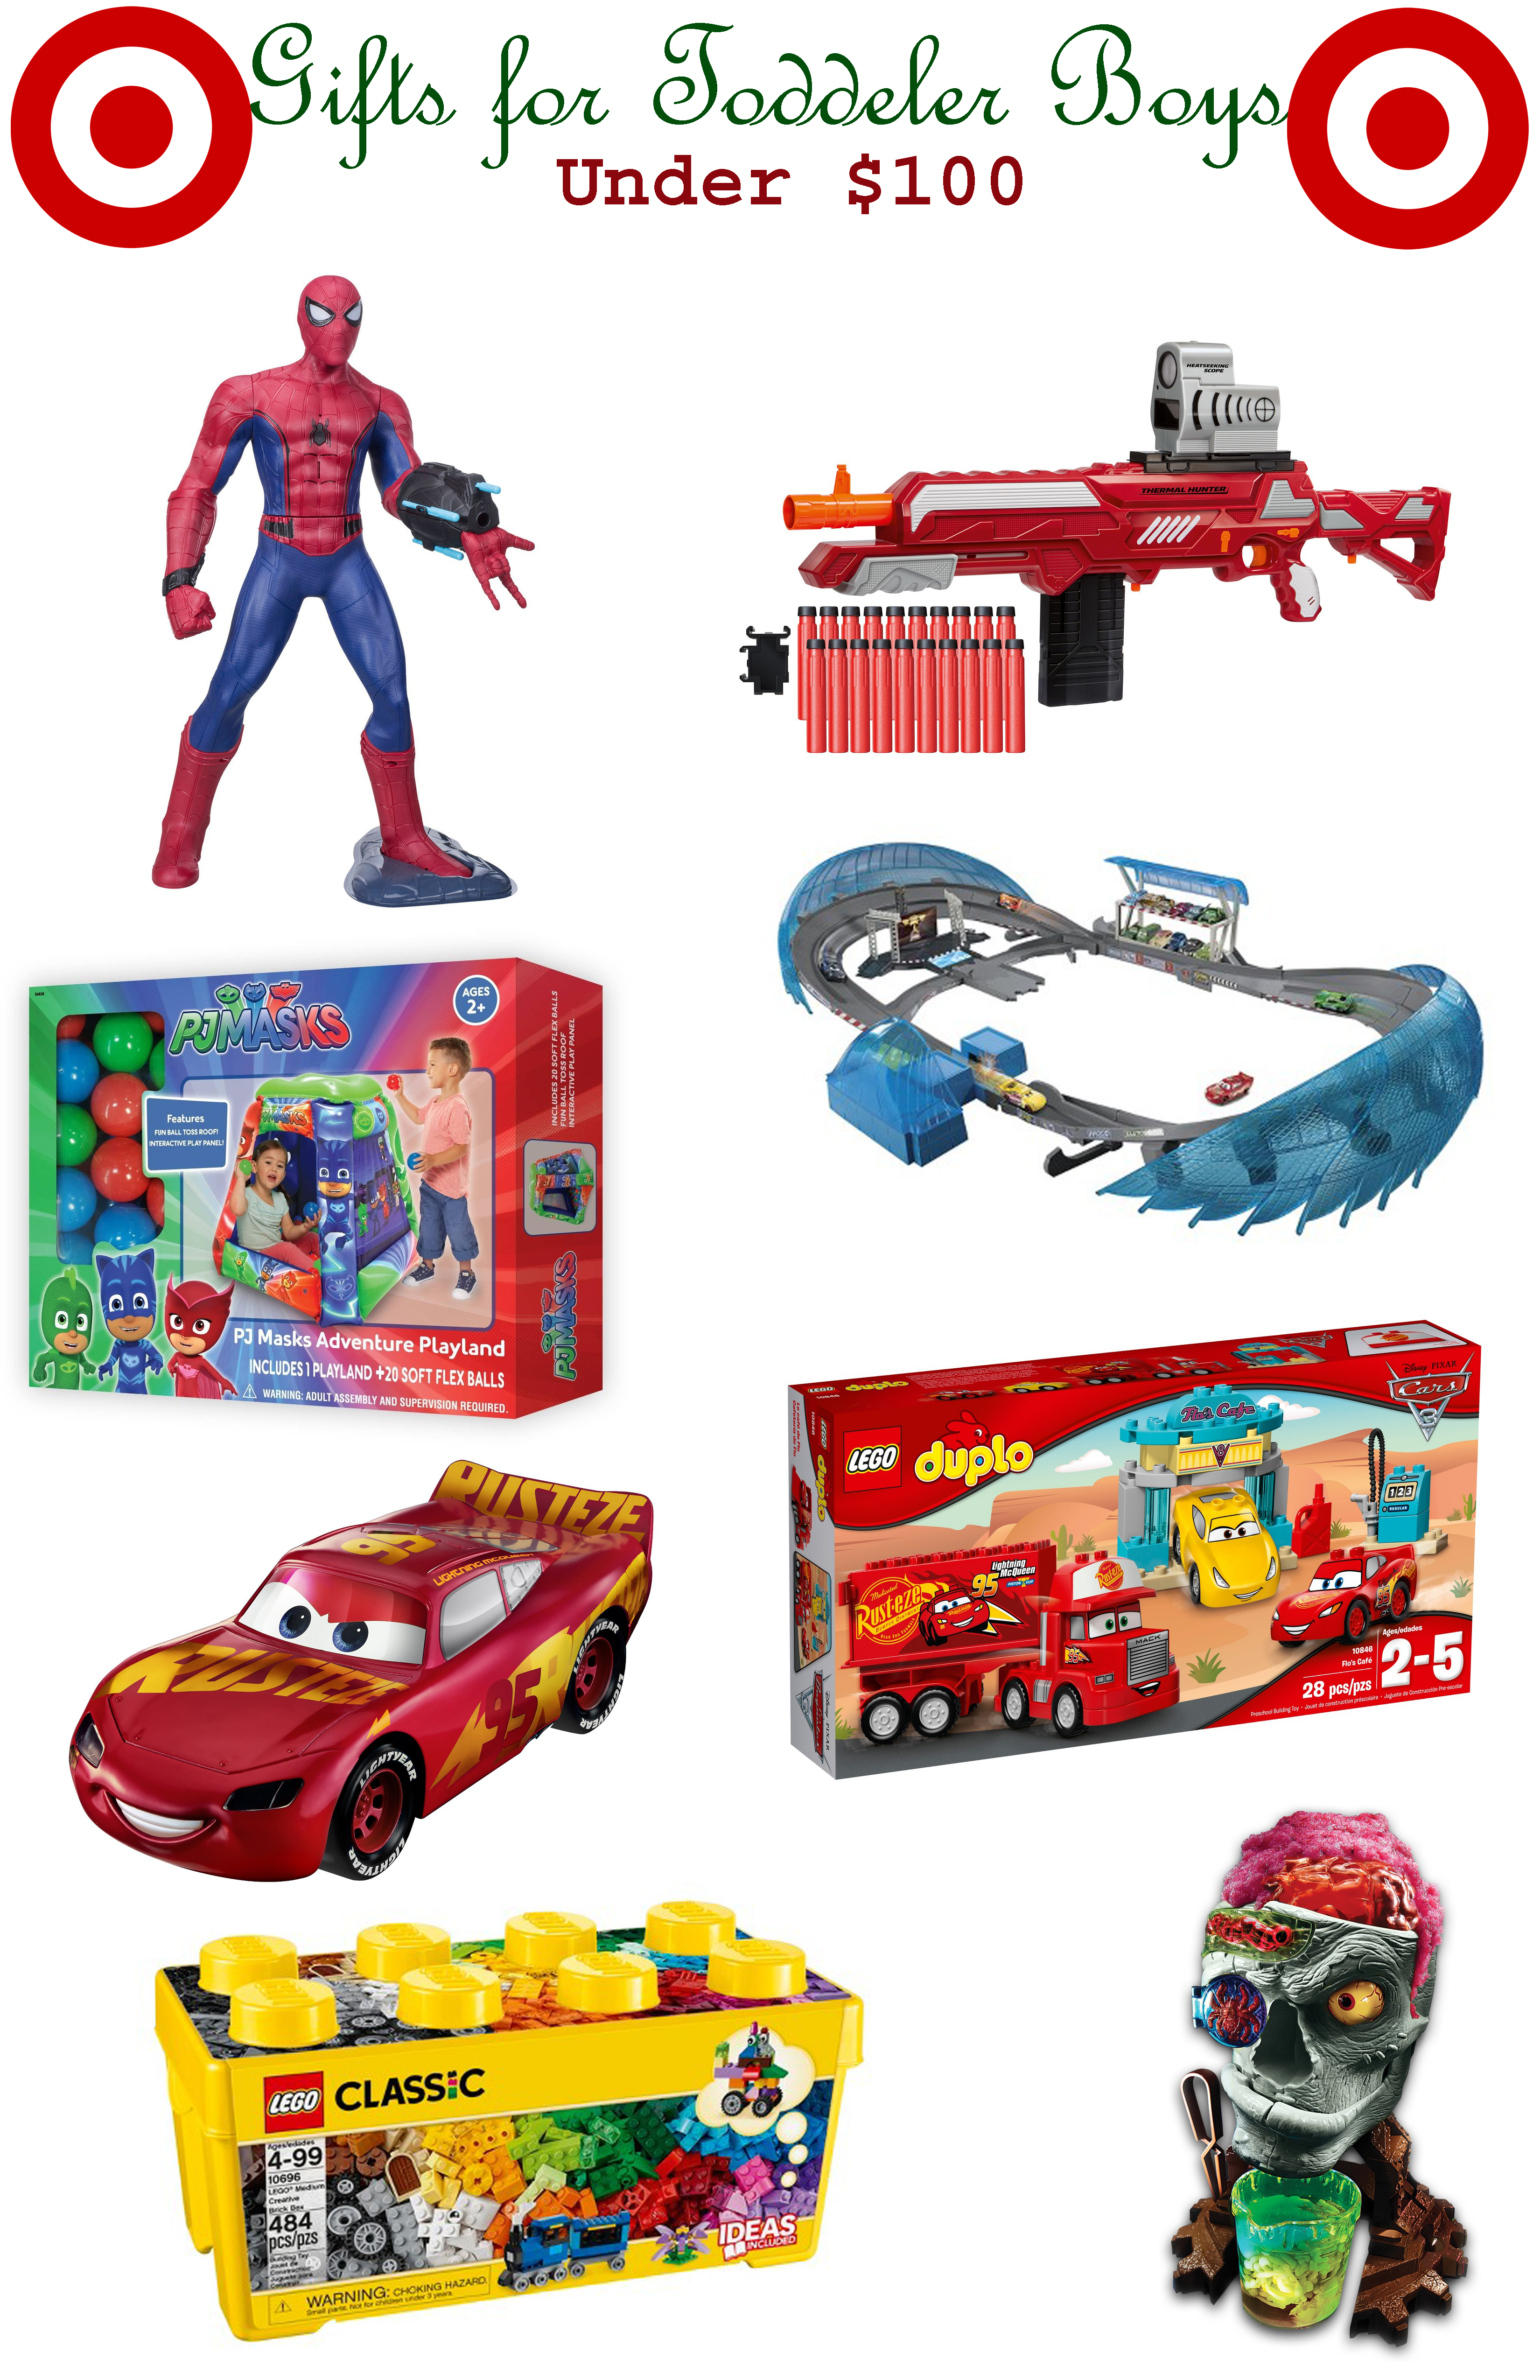 Toddler Boys Gifts